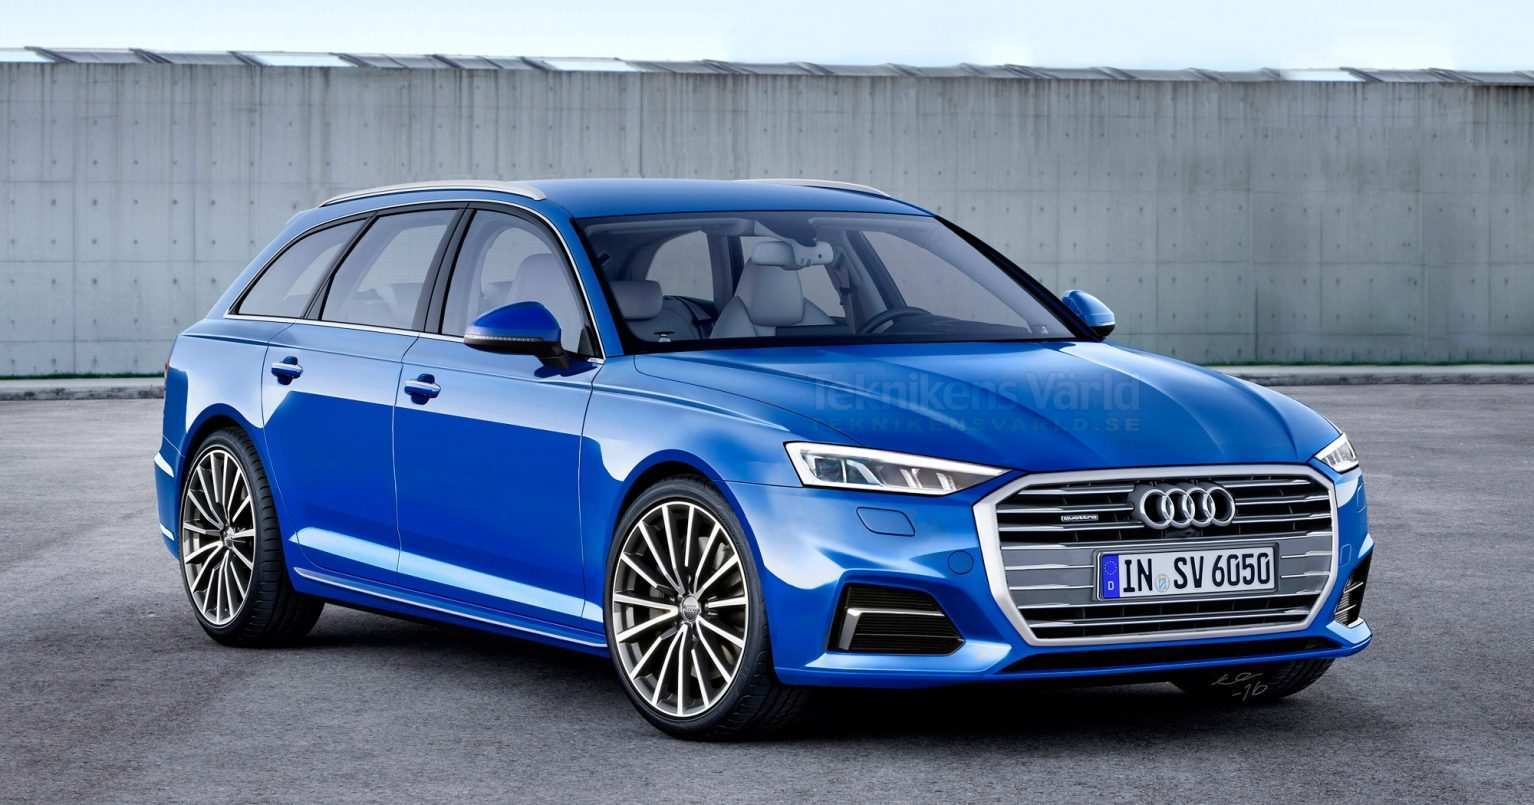 65 The Review Audi 2019 A6 New Interior Images with Review Audi 2019 A6 New Interior